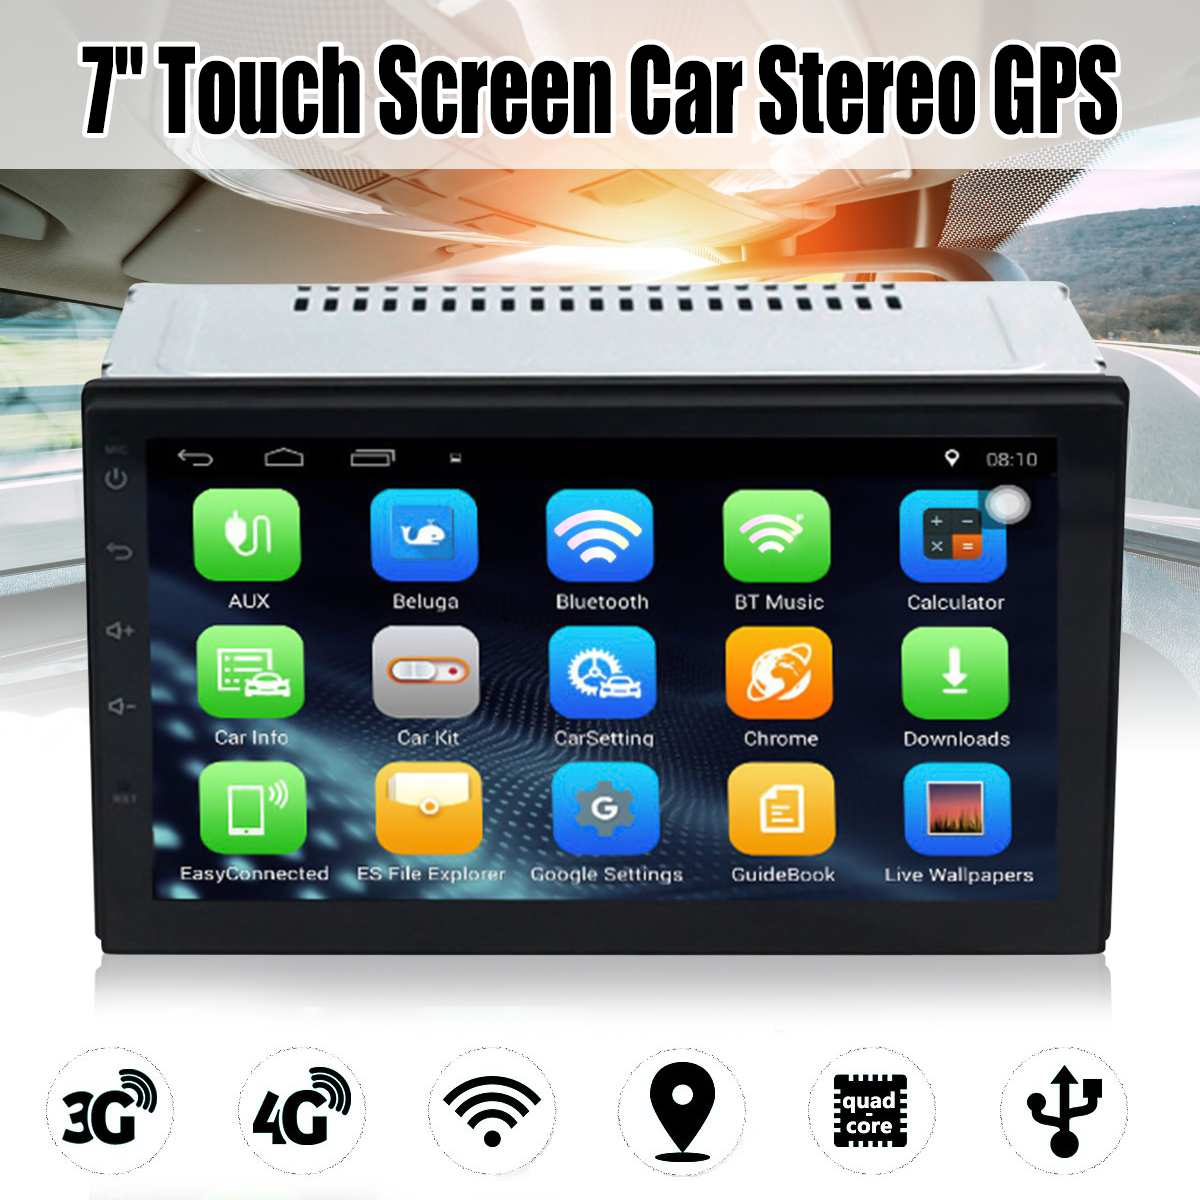 7 Android 6.0 Car Radio Stereo MP5 Quad Core 3G WIFI Double 2DIN Player GPS FM GPS Car Multimedia Player Audio Player7 Android 6.0 Car Radio Stereo MP5 Quad Core 3G WIFI Double 2DIN Player GPS FM GPS Car Multimedia Player Audio Player